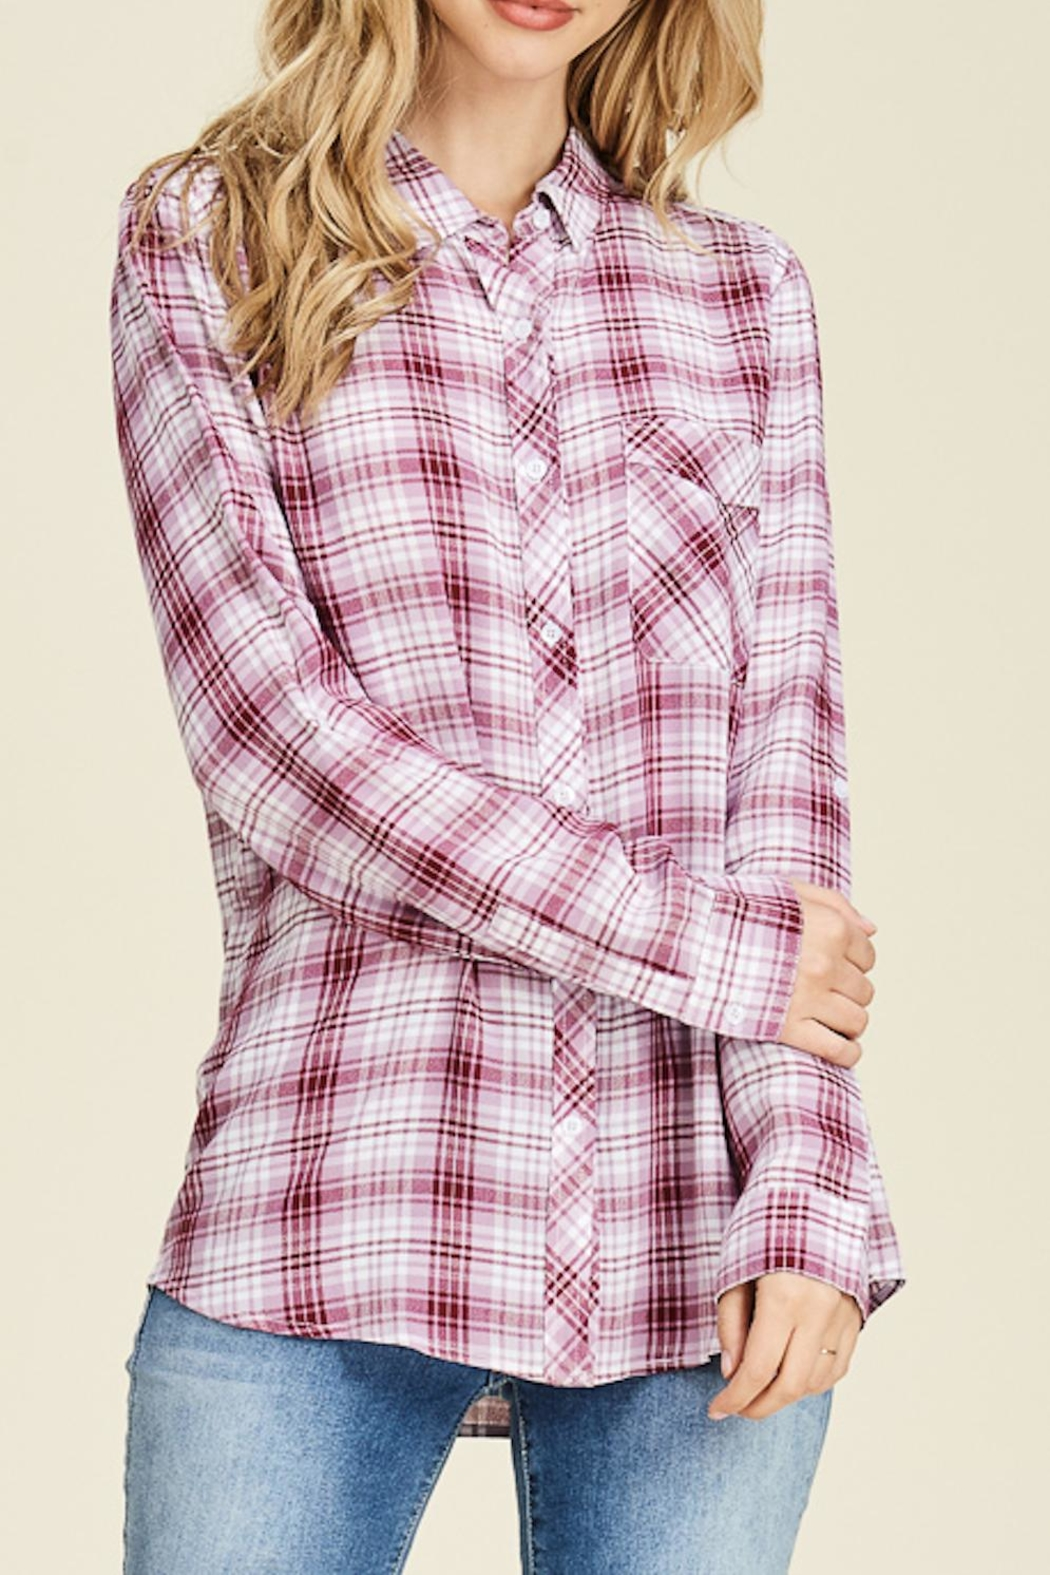 Staccato Plaid Button-Down Shirt - Main Image